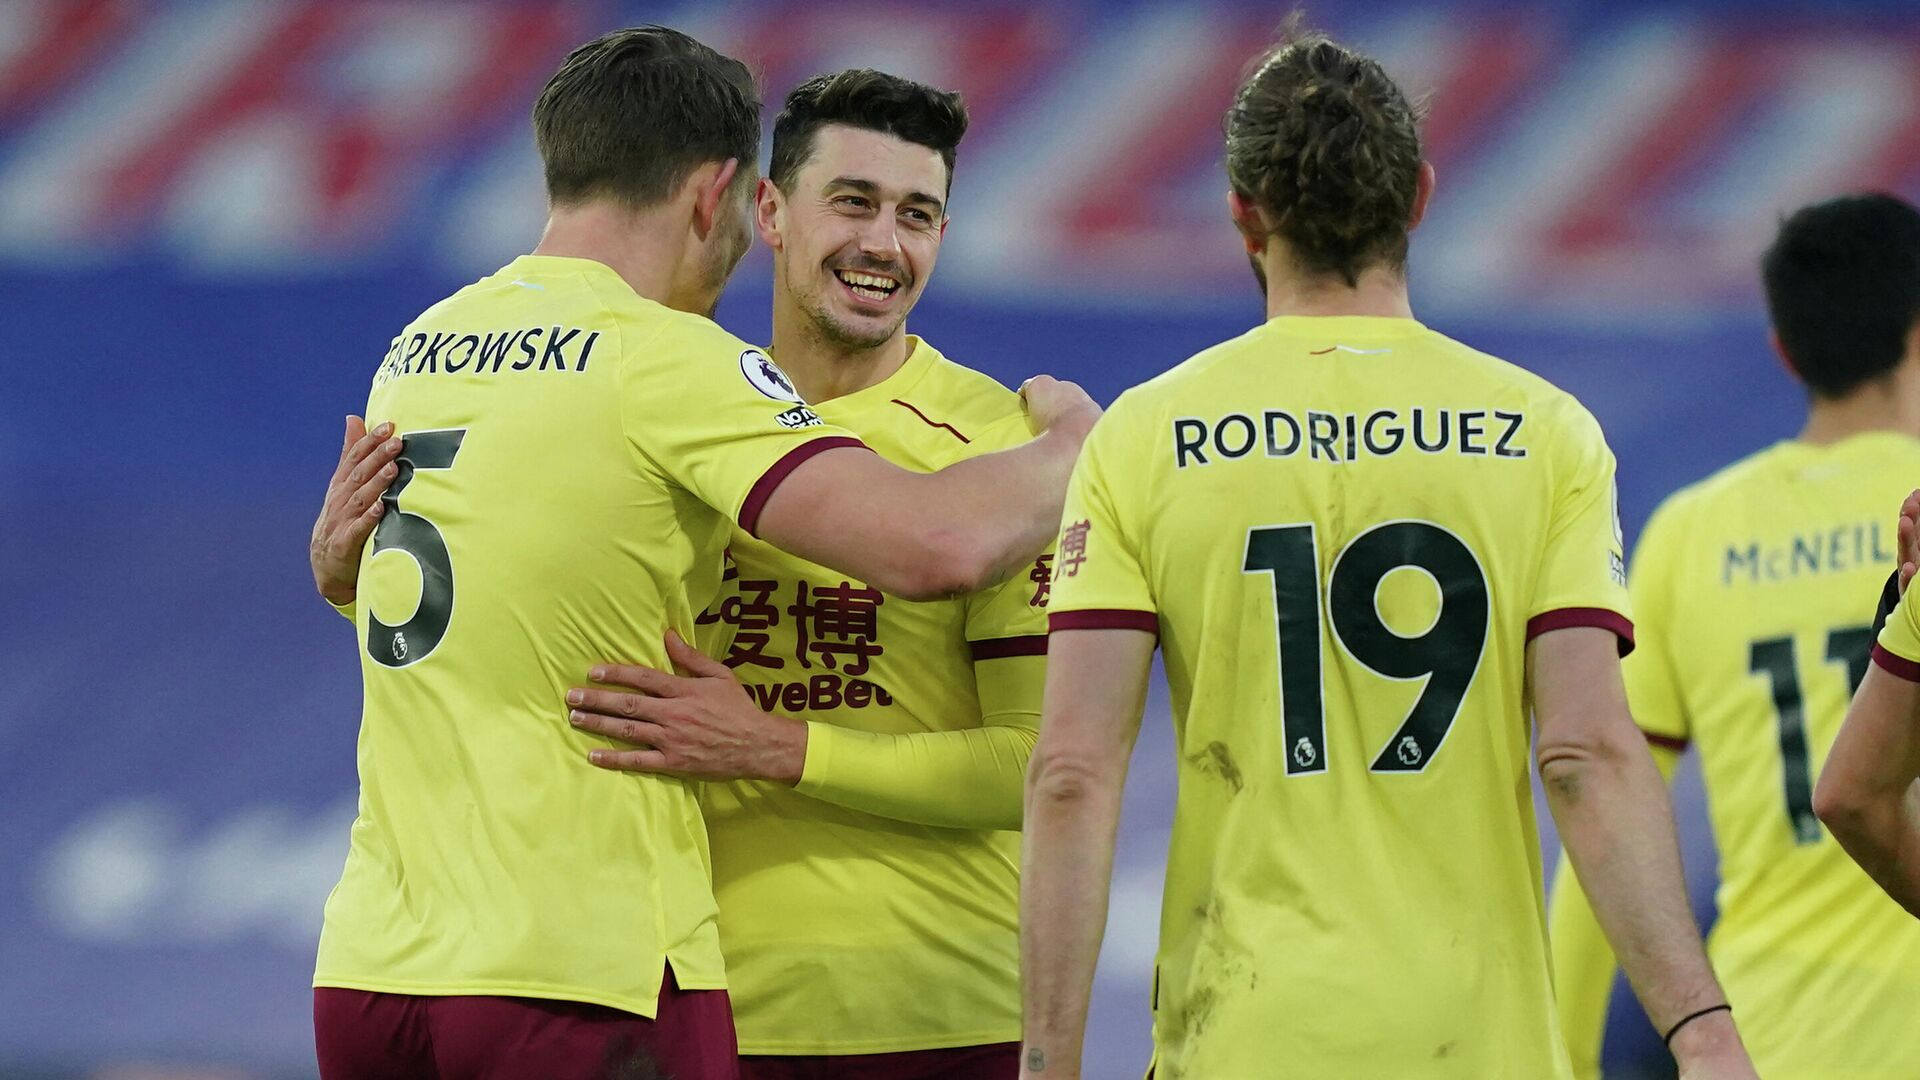 Burnley's English defender Matthew Lowton (C) gestures with teammates at the final whistle  during the English Premier League football match between Crystal Palace and Burnley at Selhurst Park in south London on February 13, 2021. (Photo by John Walton / POOL / AFP) / RESTRICTED TO EDITORIAL USE. No use with unauthorized audio, video, data, fixture lists, club/league logos or 'live' services. Online in-match use limited to 120 images. An additional 40 images may be used in extra time. No video emulation. Social media in-match use limited to 120 images. An additional 40 images may be used in extra time. No use in betting publications, games or single club/league/player publications. /  - РИА Новости, 1920, 13.02.2021